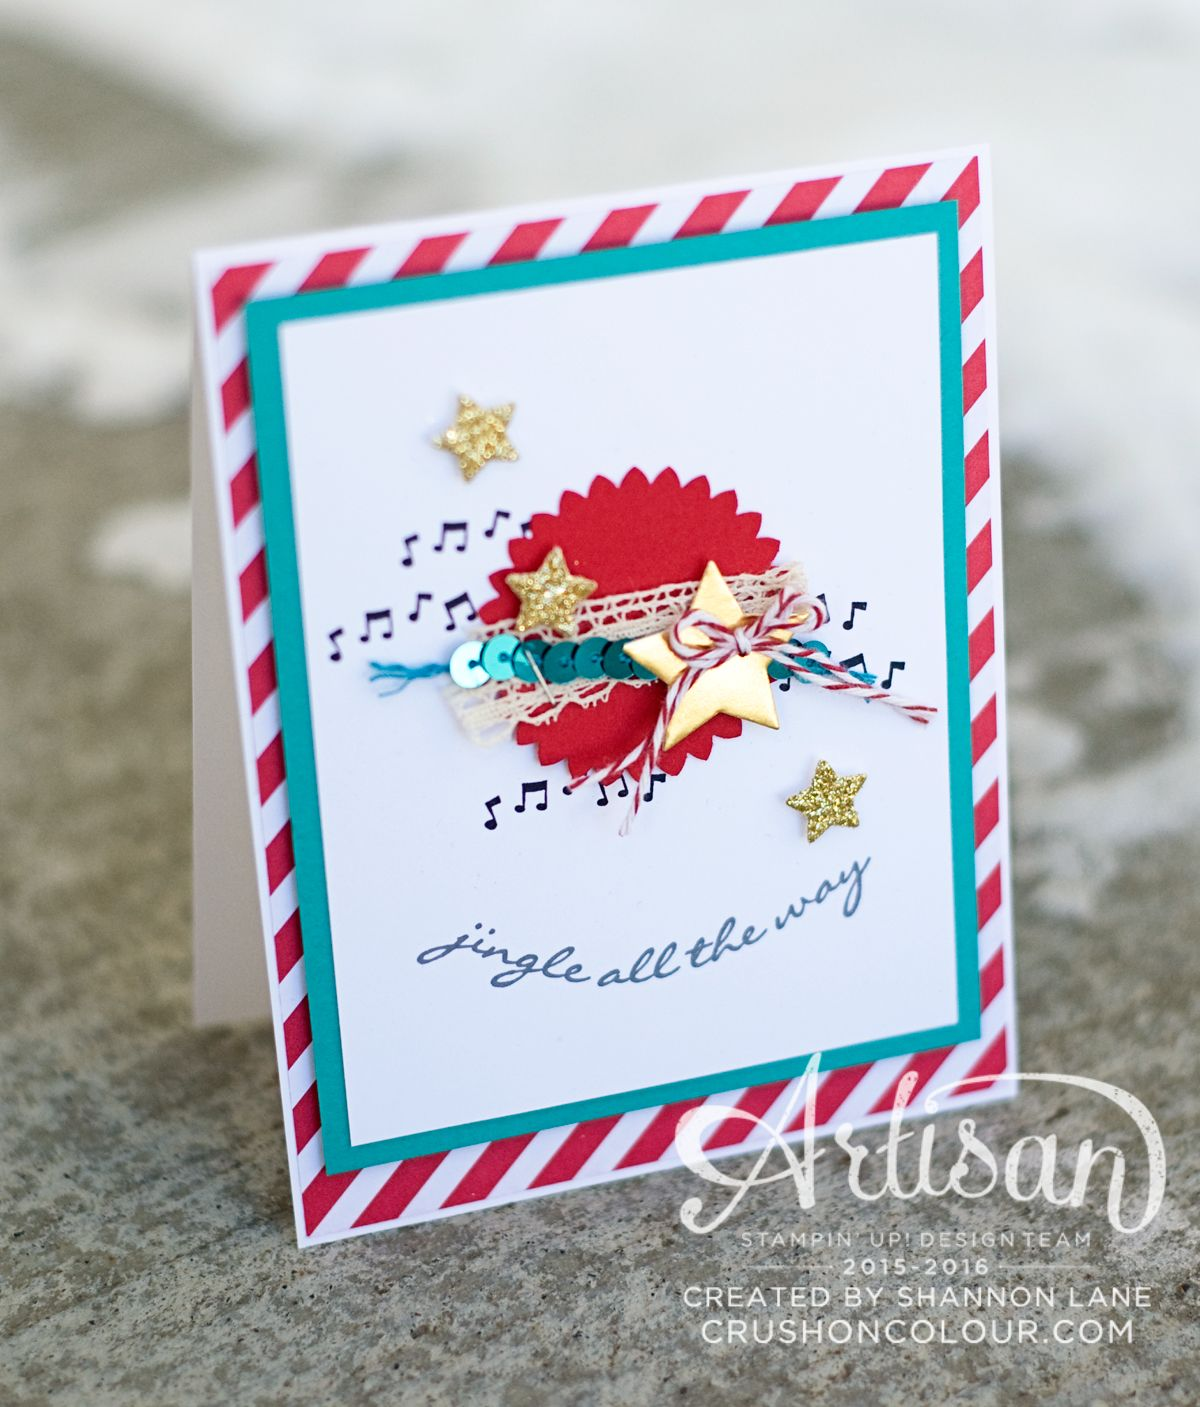 Crush On Colour: Jingle All The Way! | Cards | Pinterest | Crushes ...